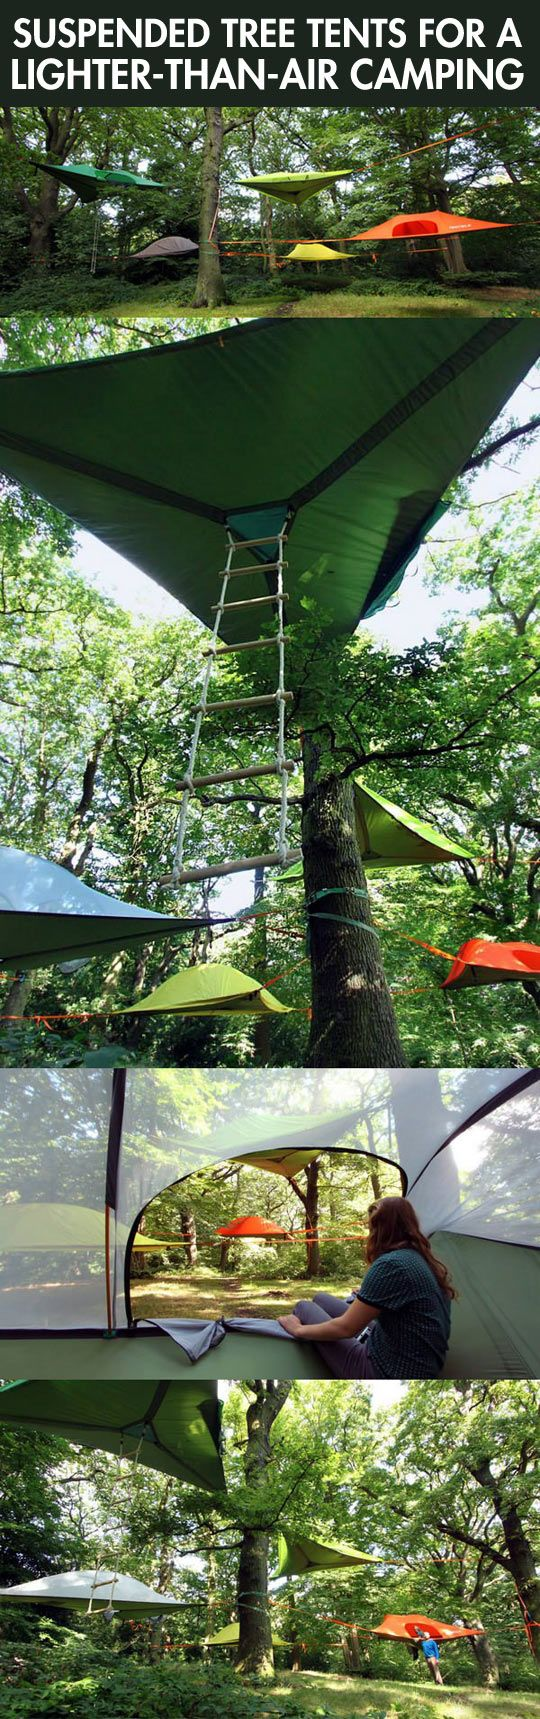 Tree tents…it must be.... in-tense?! Hahahorf. But seriously, i would be paranoid of the bottom tearing in the middle of the night